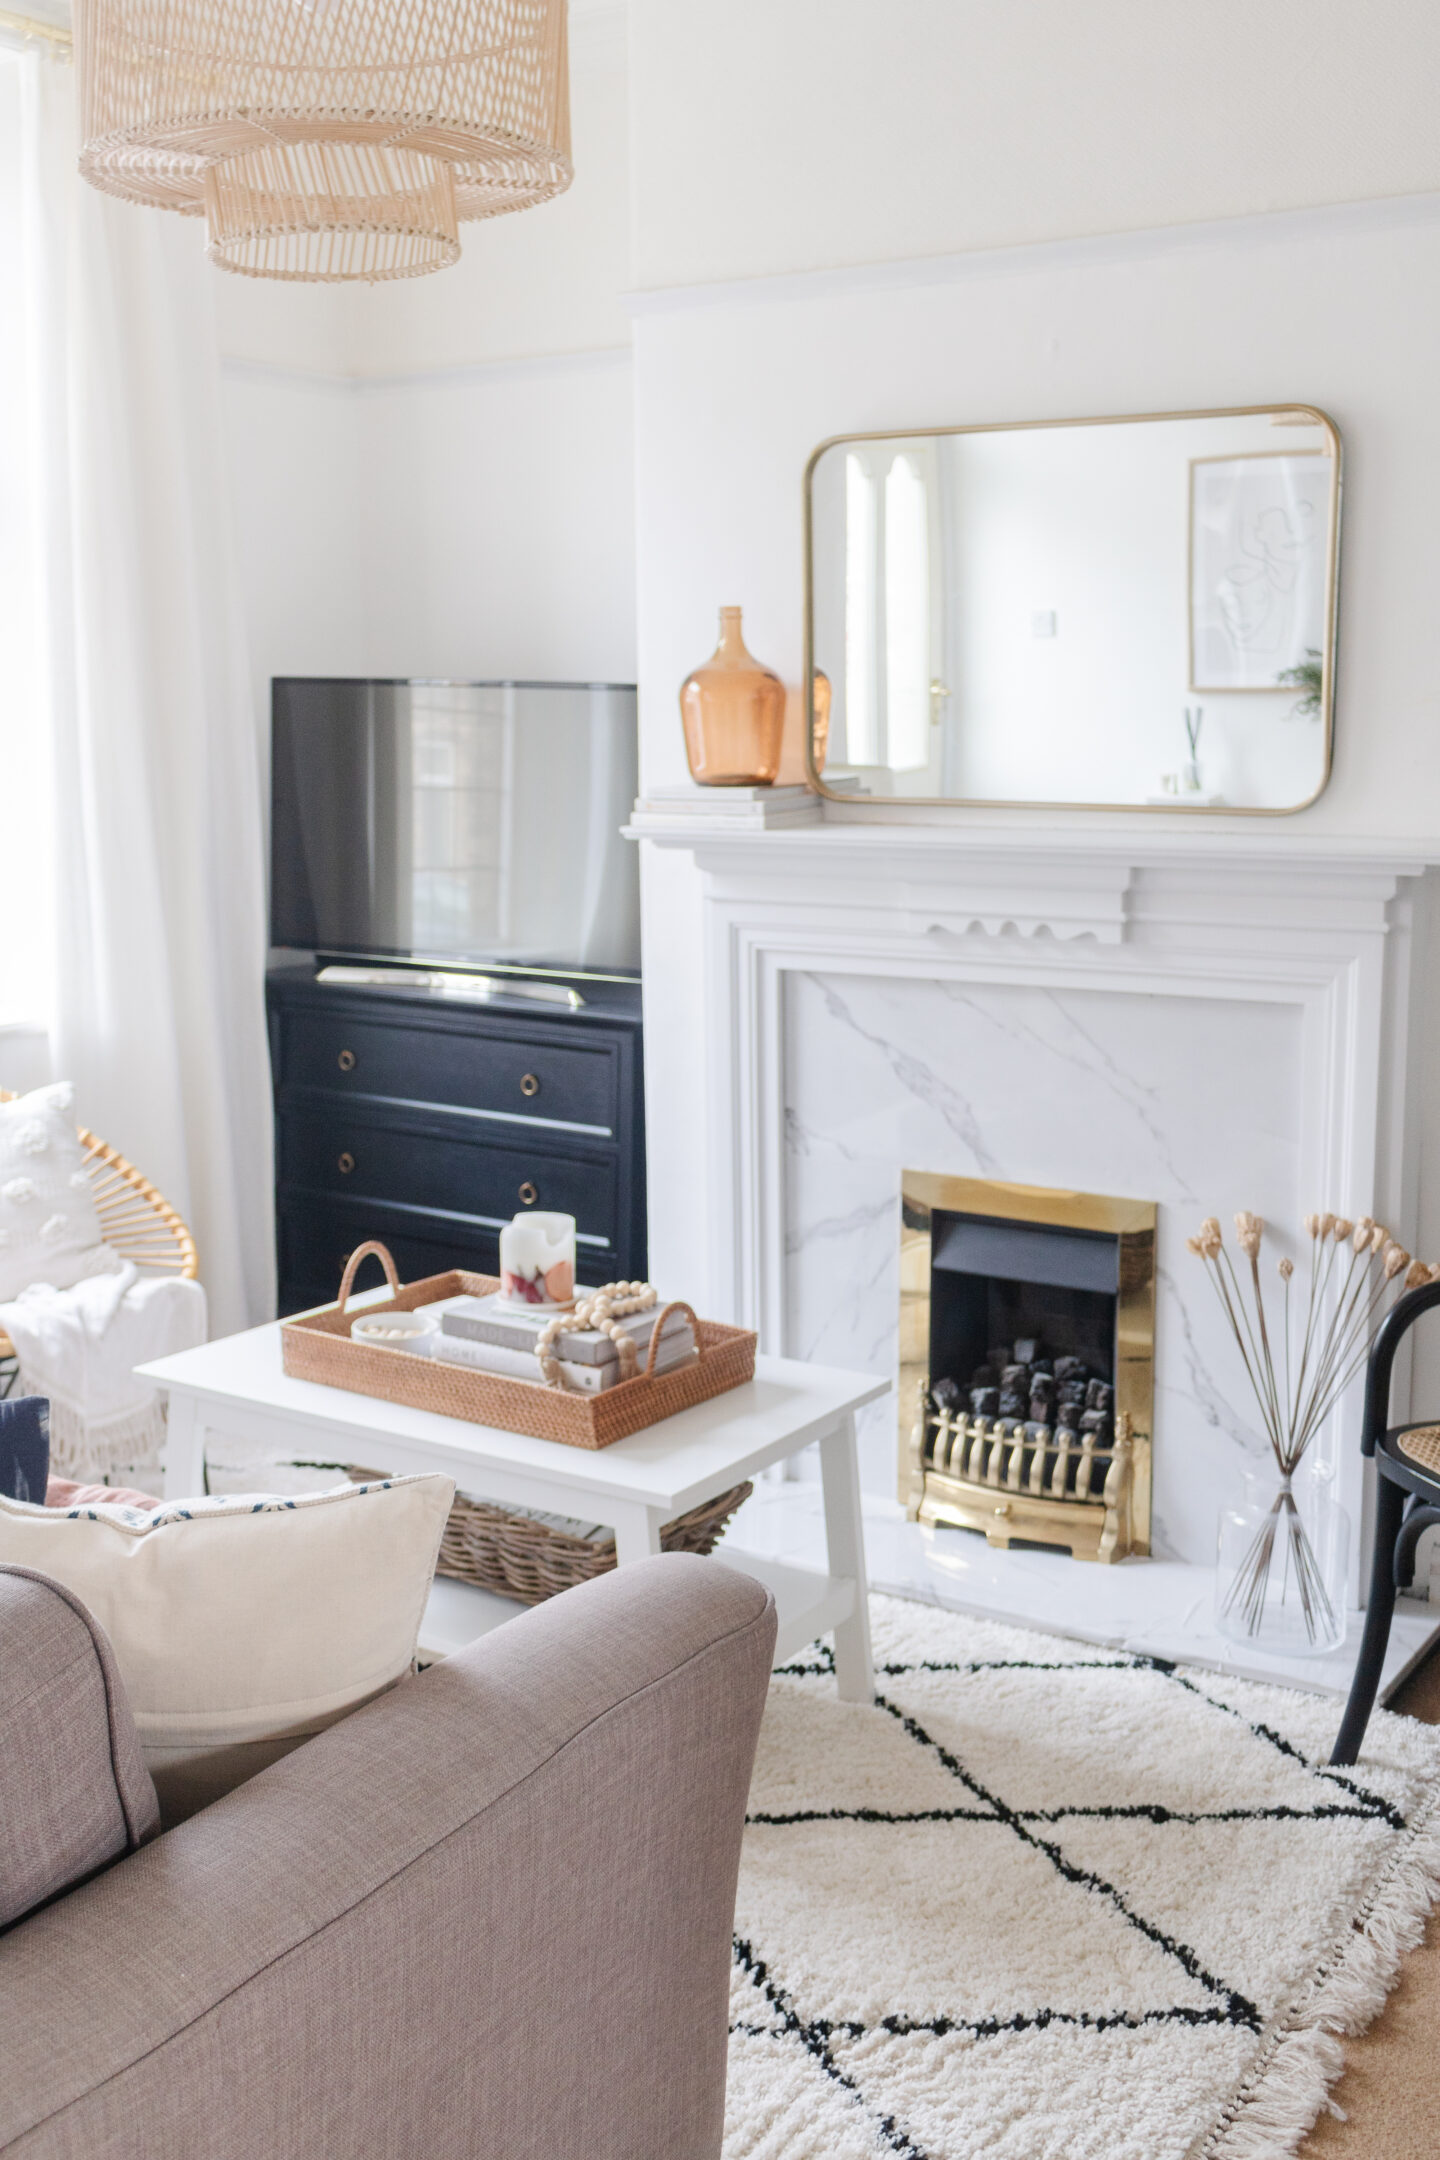 an edited lifestyle interiors home photoshoot ready